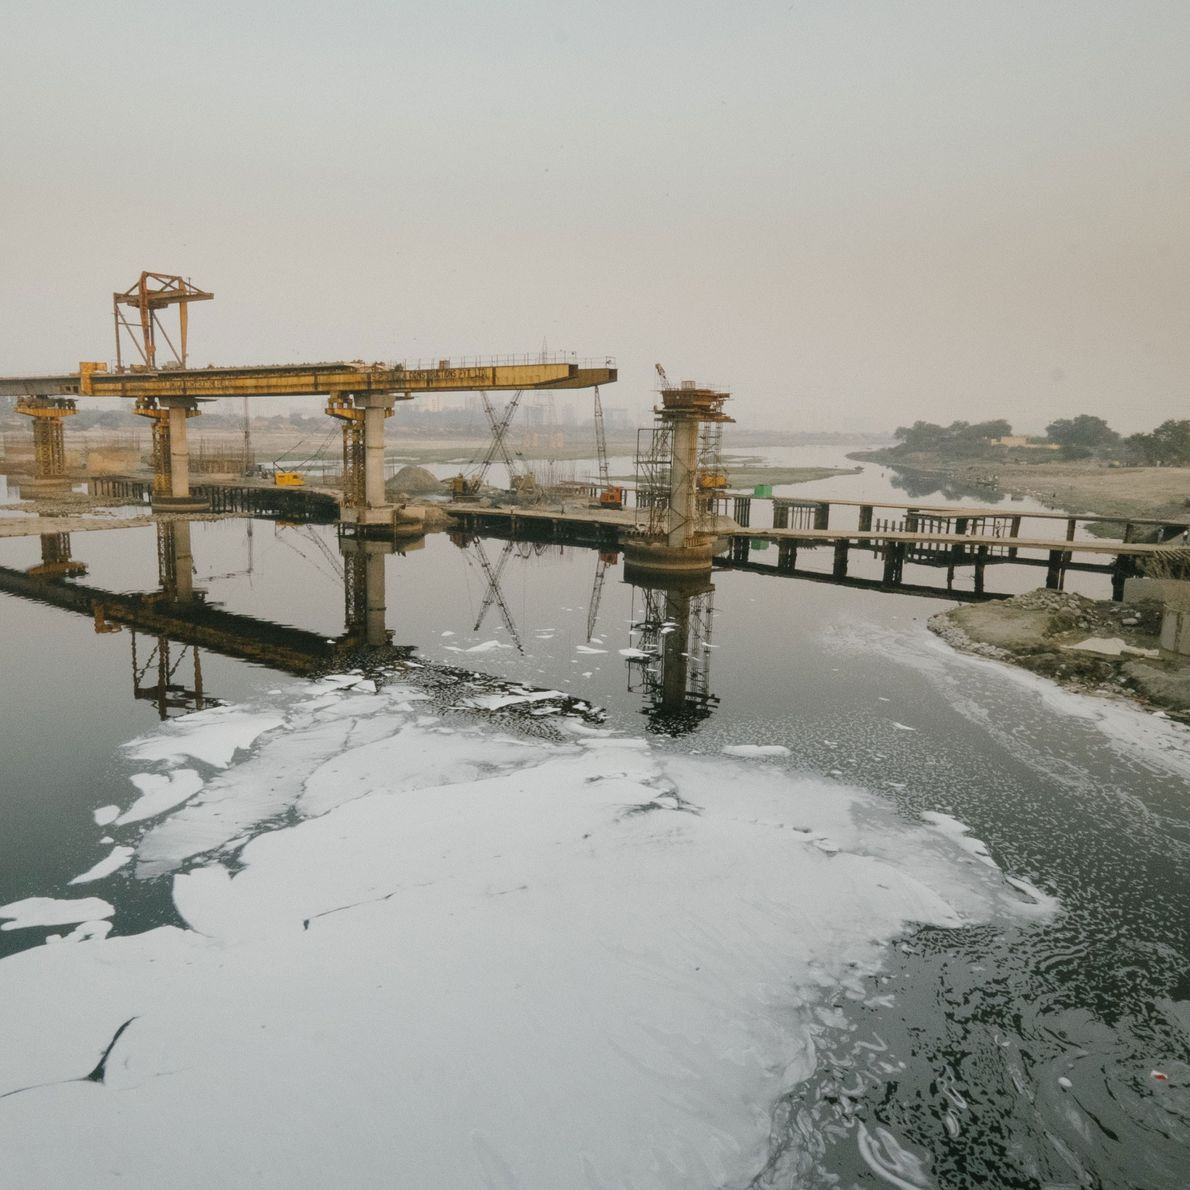 Nearby industries dump their chemical waste into the Yamuna, which has left the river blanketed in ...